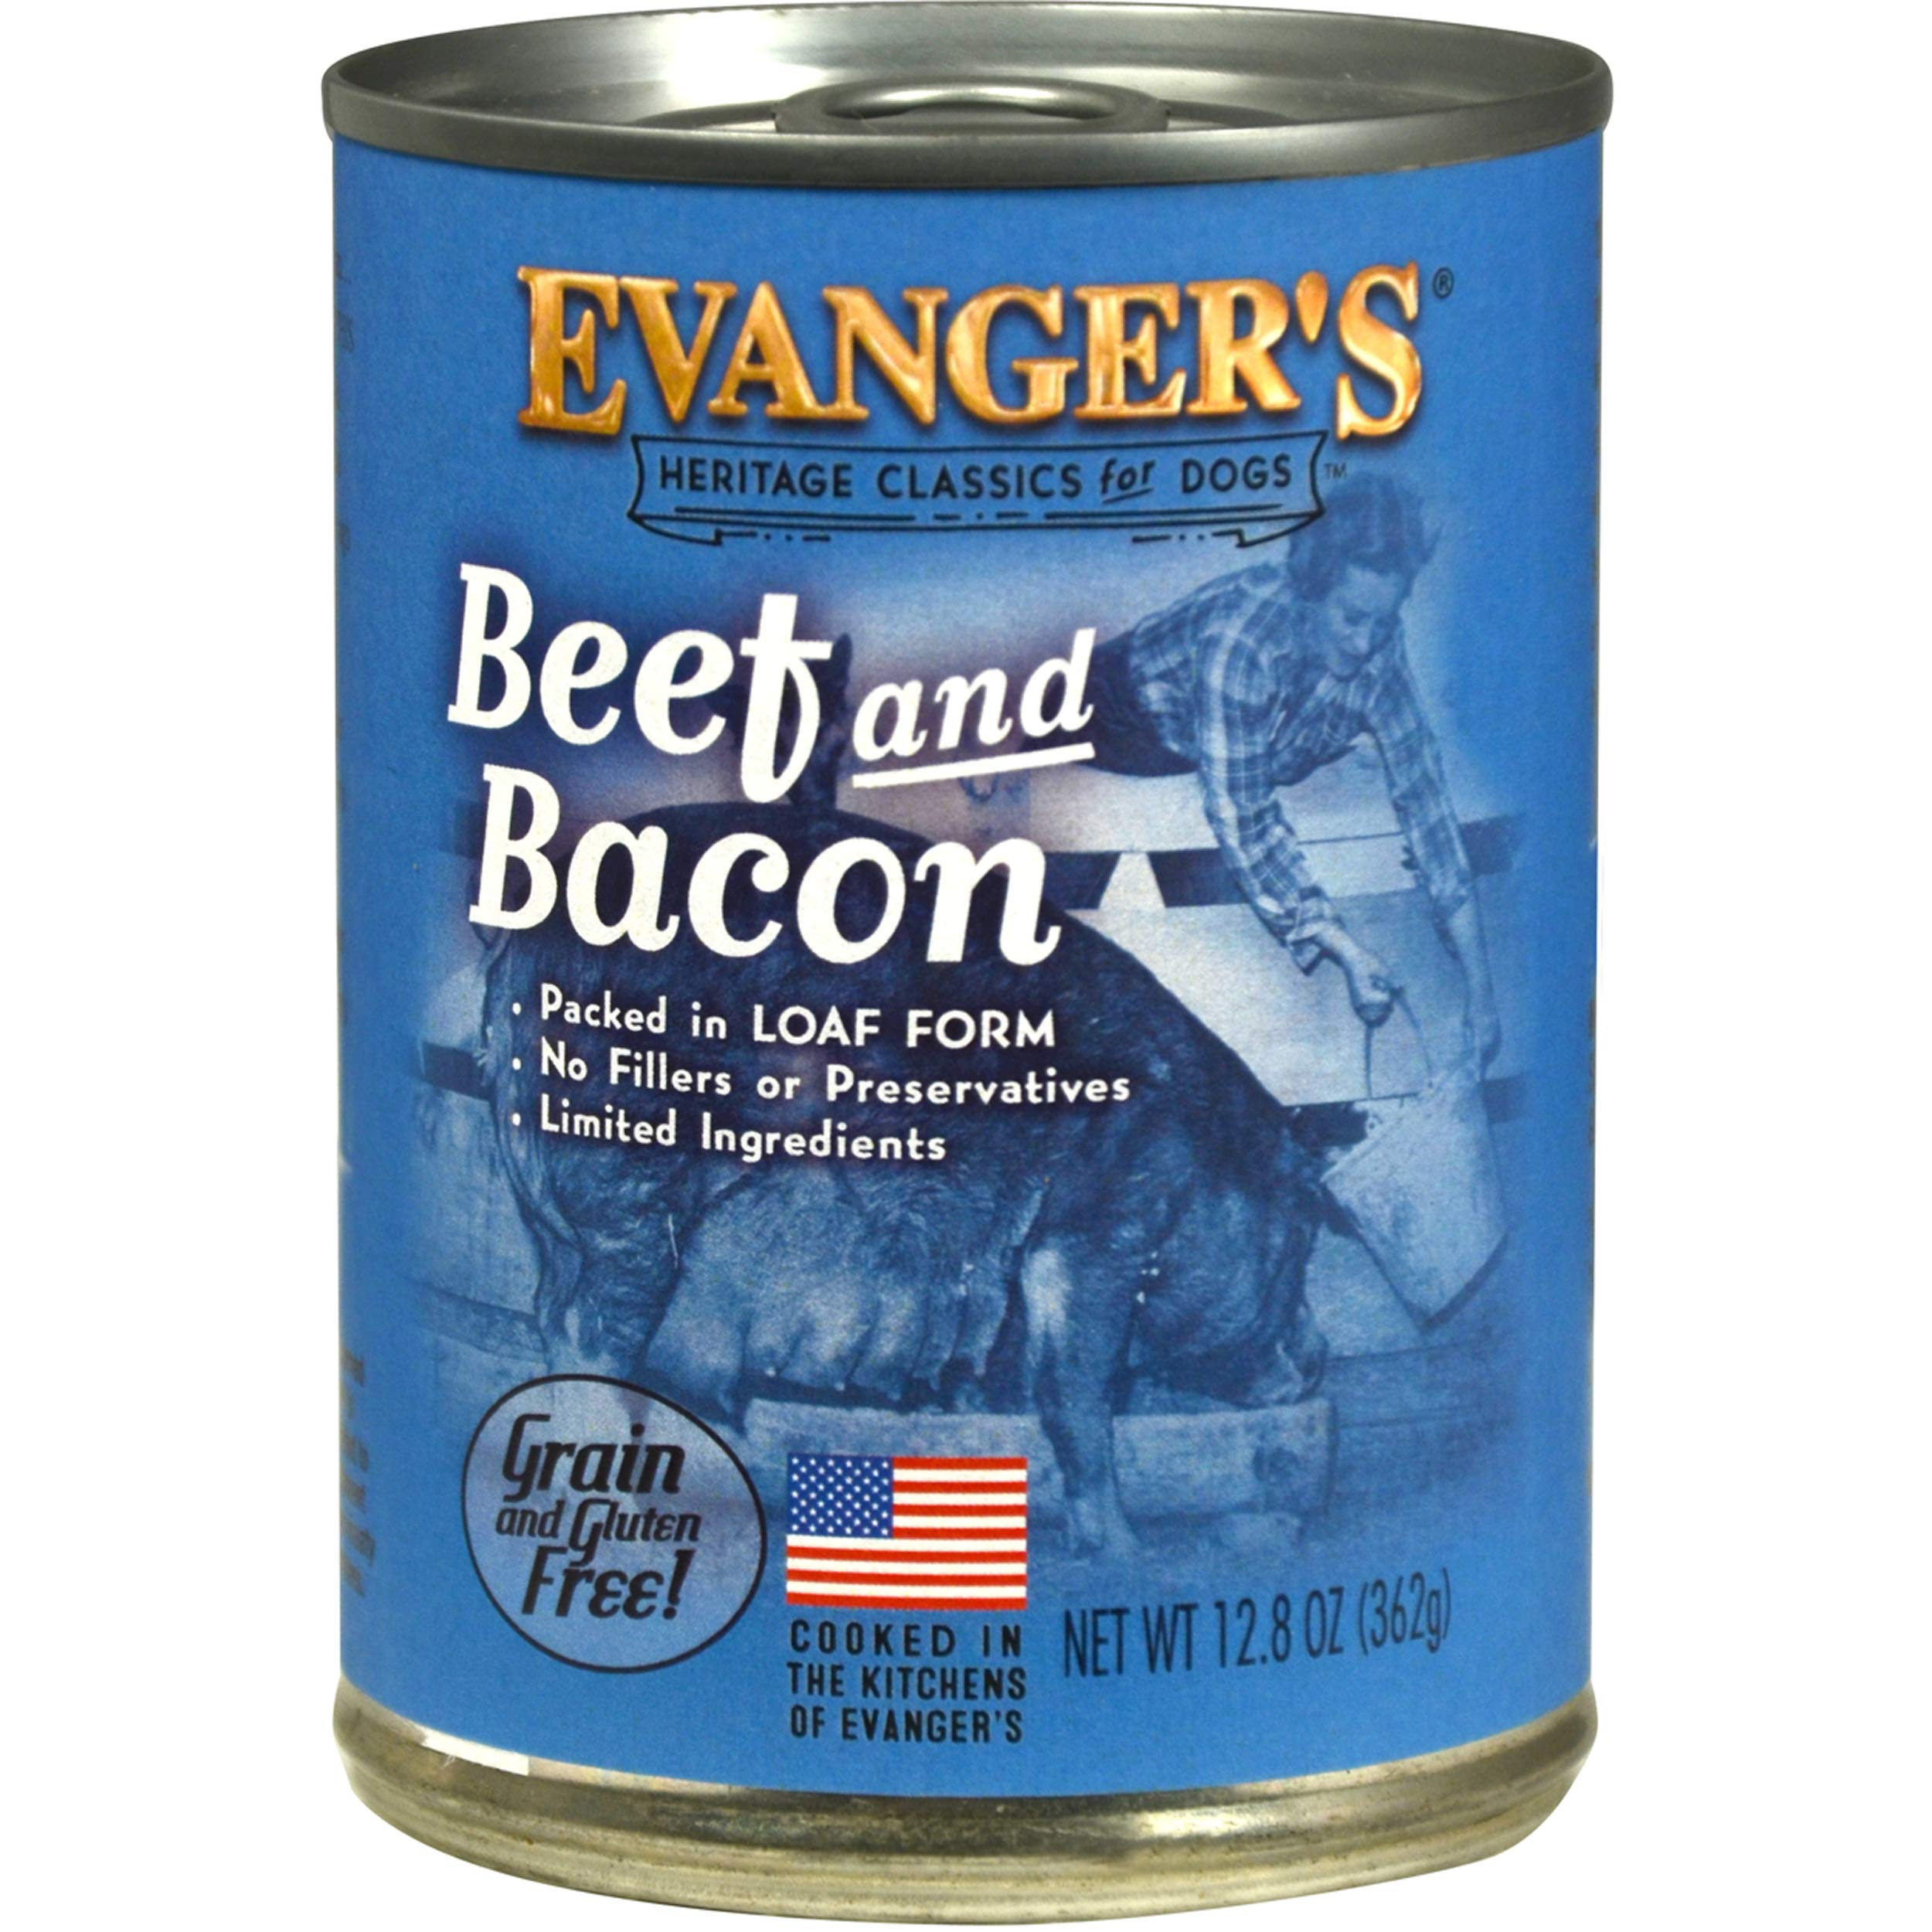 Evanger's Heritage Classic Beef & Bacon for Dogs, 12 x 20.2 oz cans, 12 x 20.2 oz cans by Evanger's Dog & Cat Food Company, Inc.